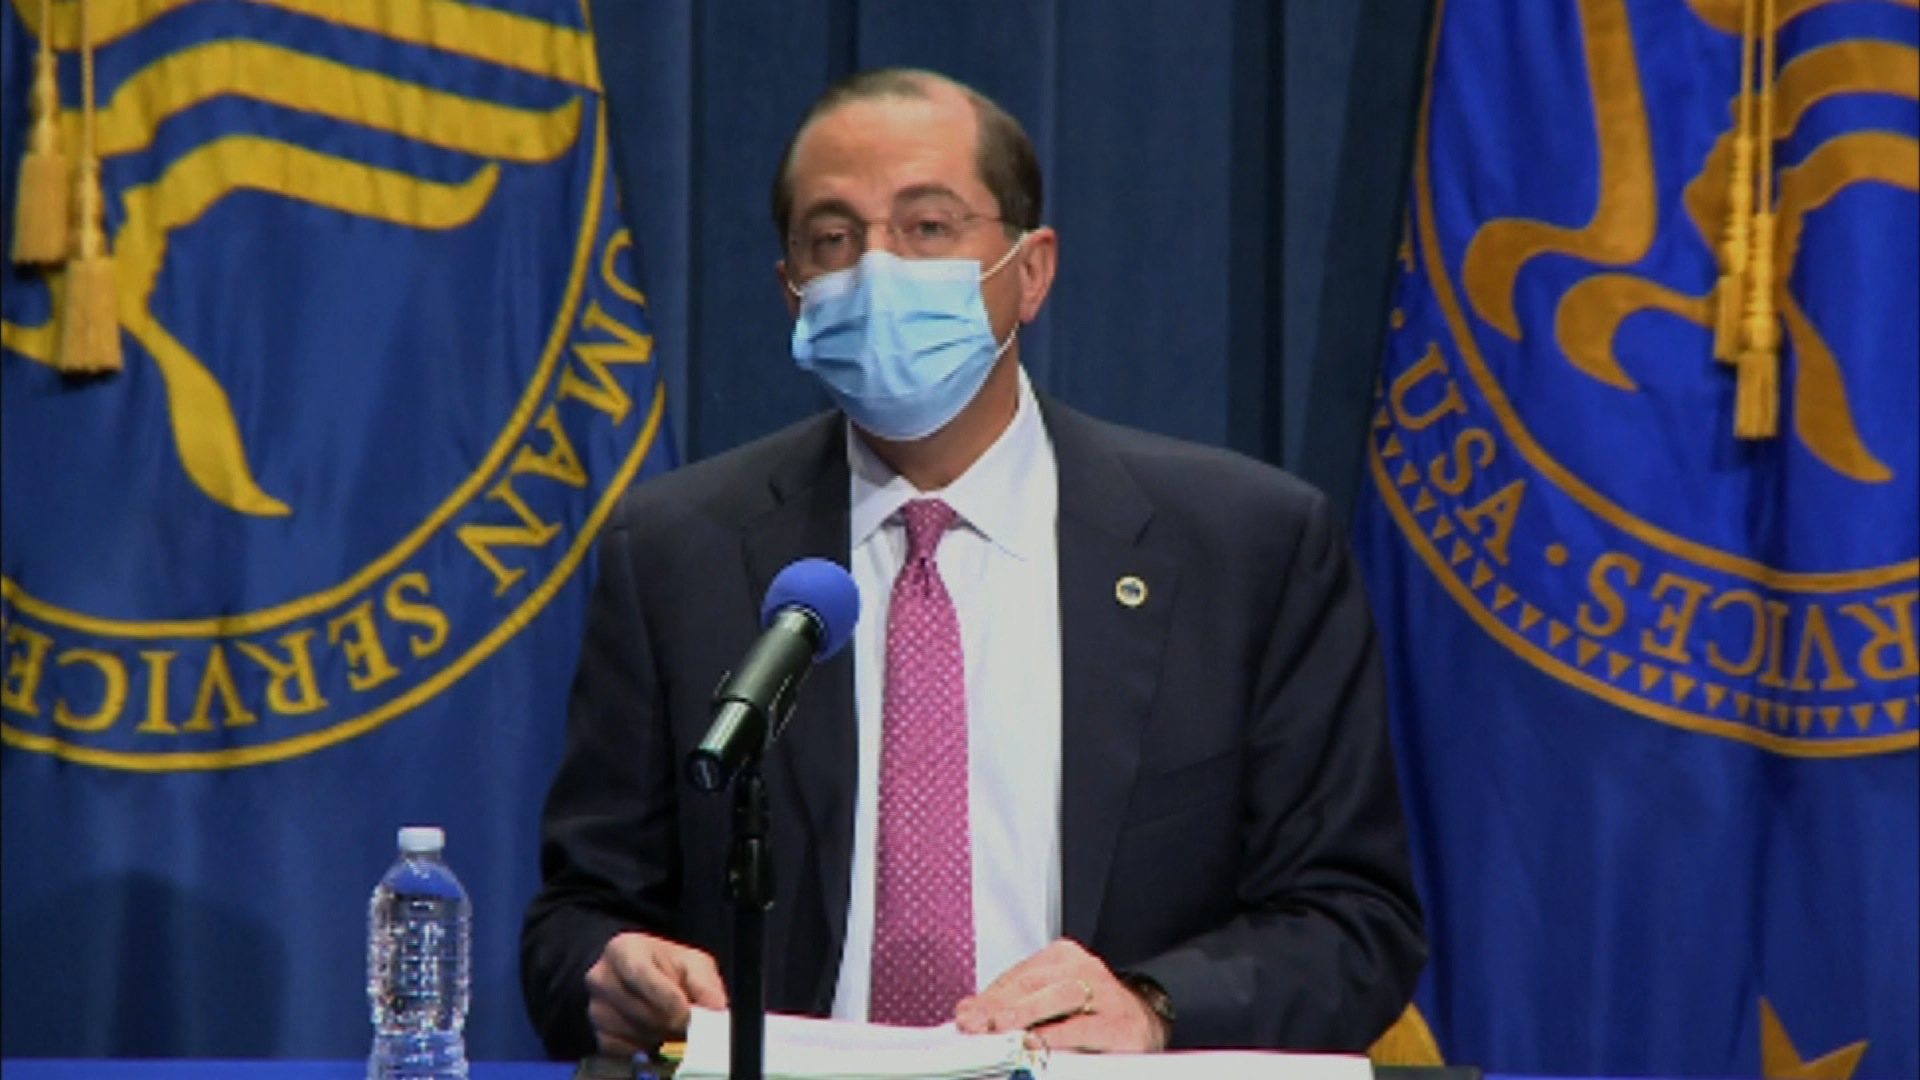 Health and Human Services Secretary Alex Azar speaks during an Operation Warp Speed briefing on November 24.